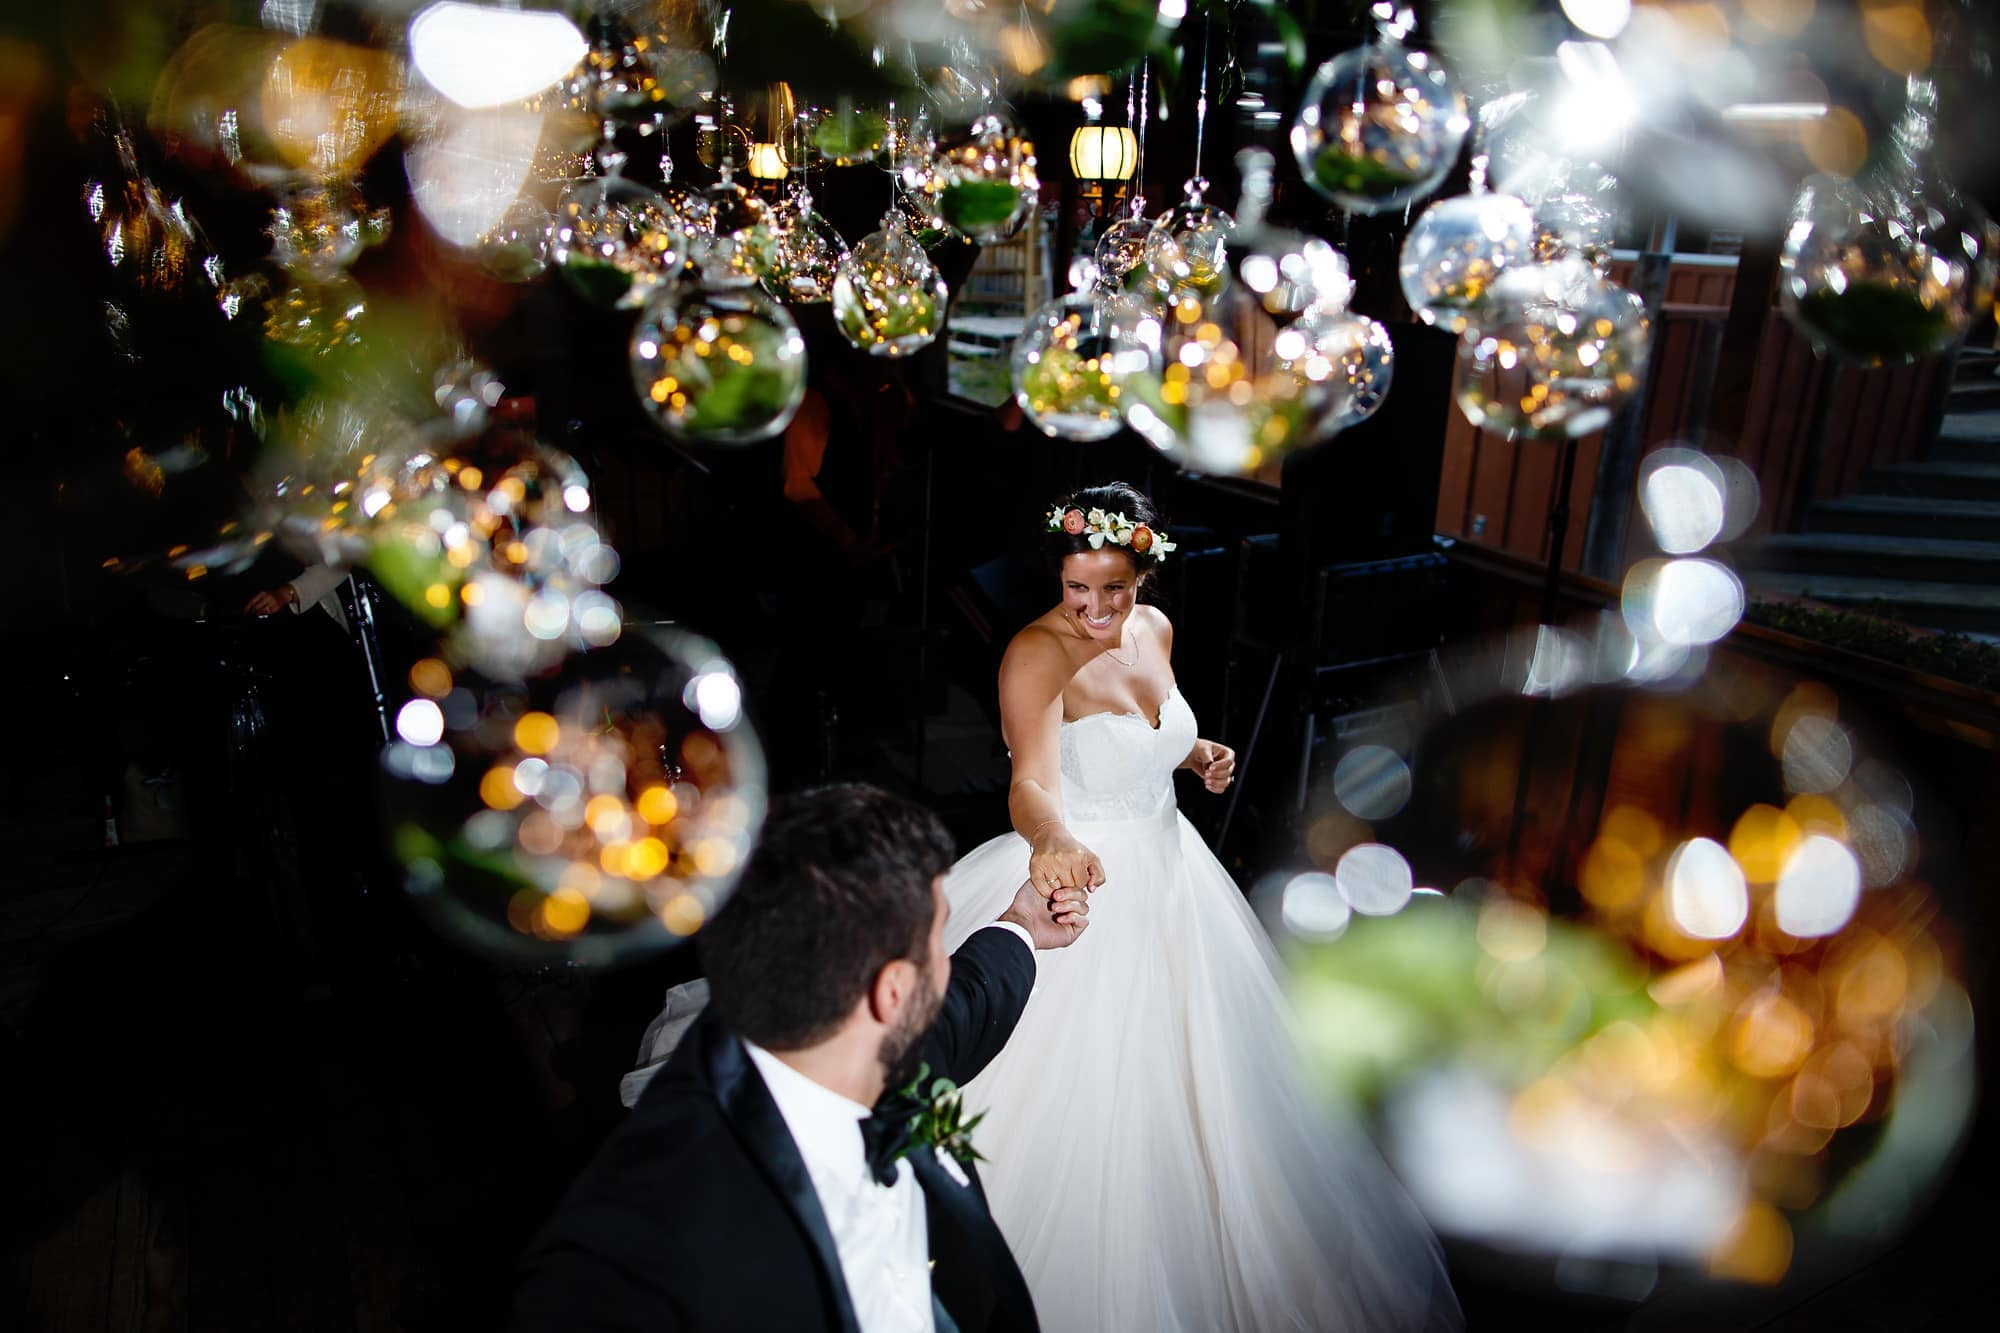 The Bride and groom share their first dance surrounded by glass globes at the reception at Piney River Ranch near Vail, Colorado.